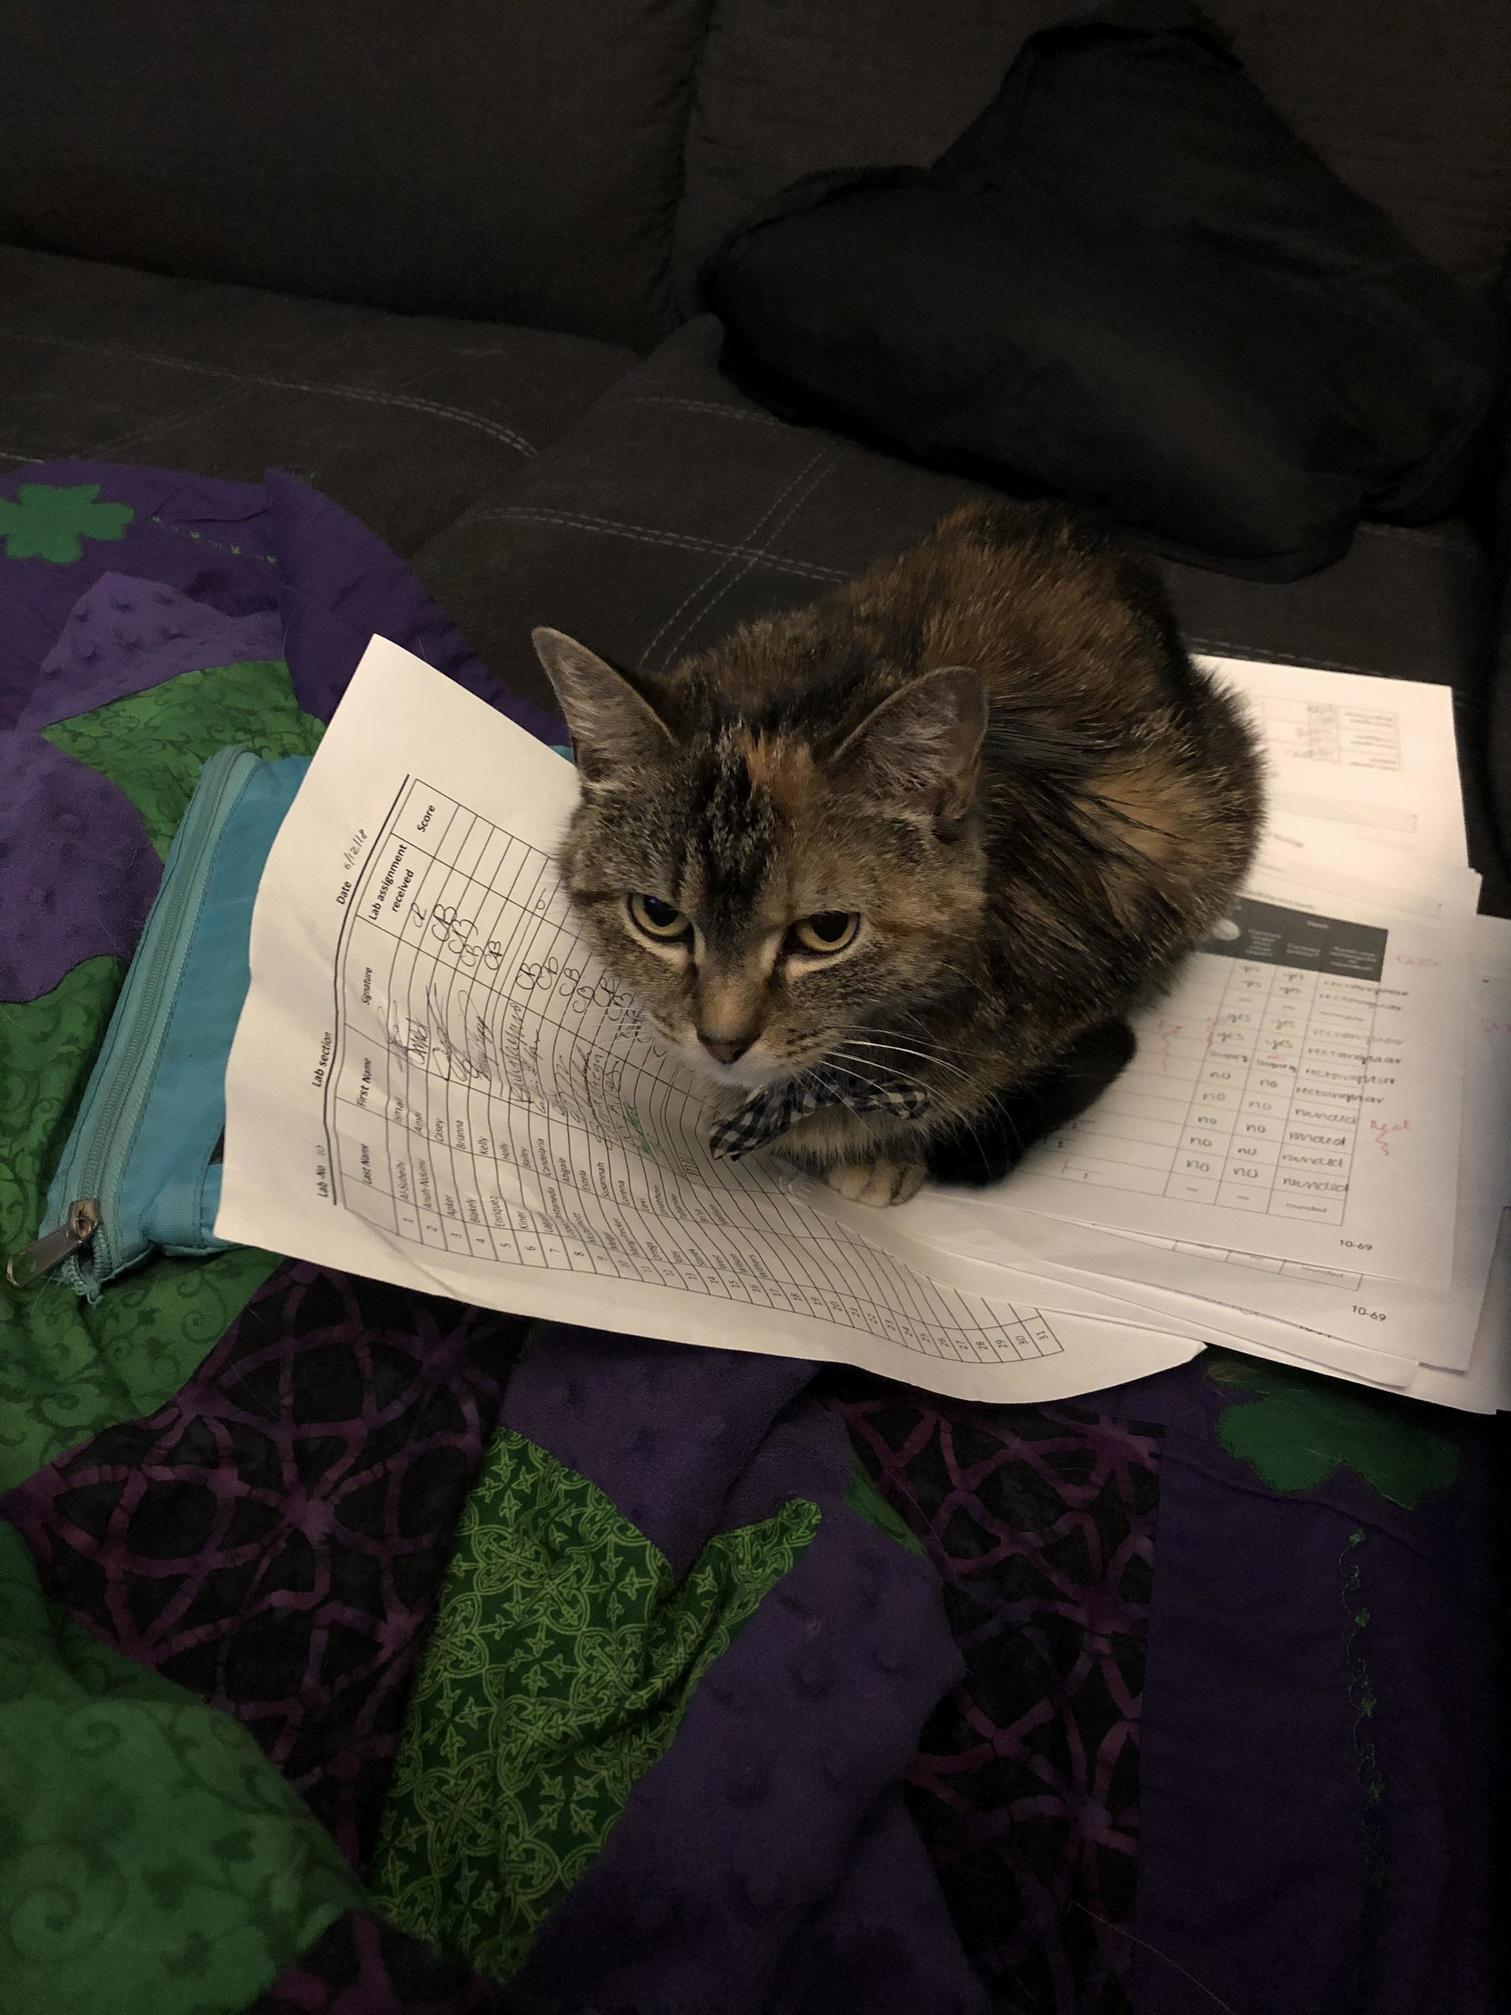 And now salem doesnt want me to grade